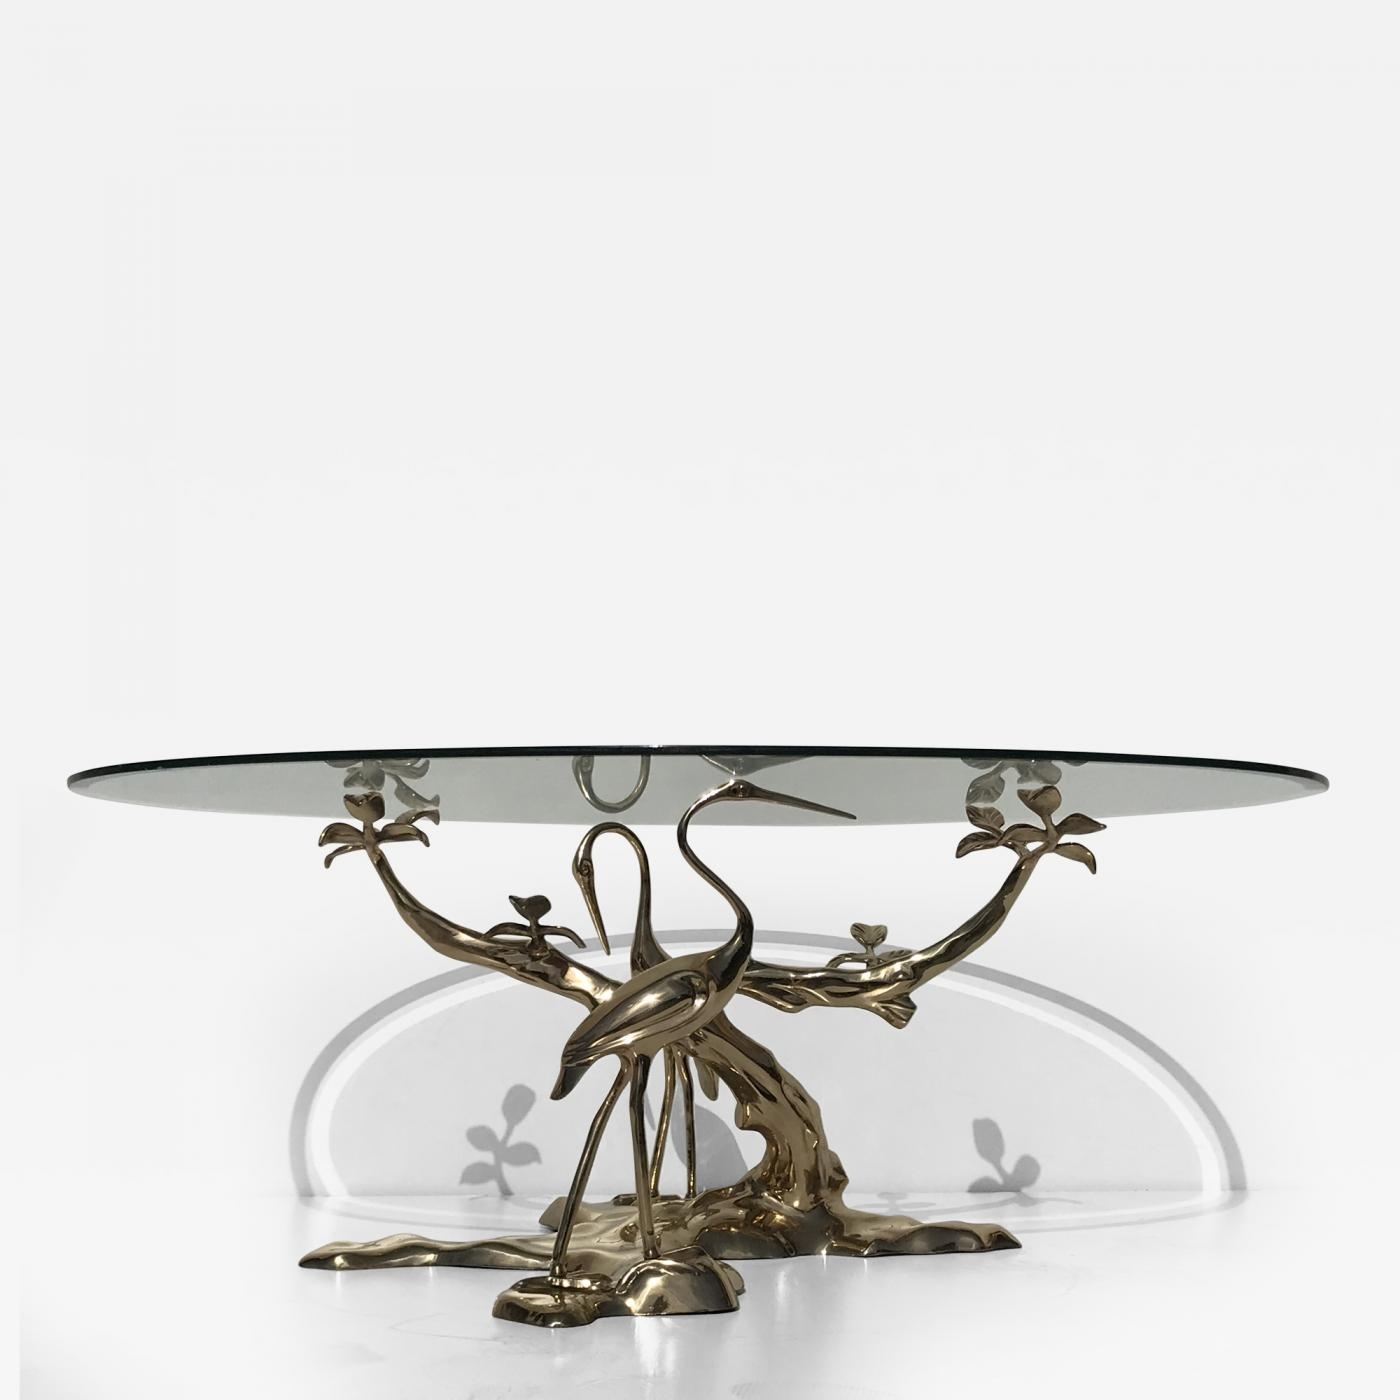 Willy Daro - Willy Daro Brass Tree Coffee Table inside Cacti Brass Coffee Tables (Image 29 of 30)